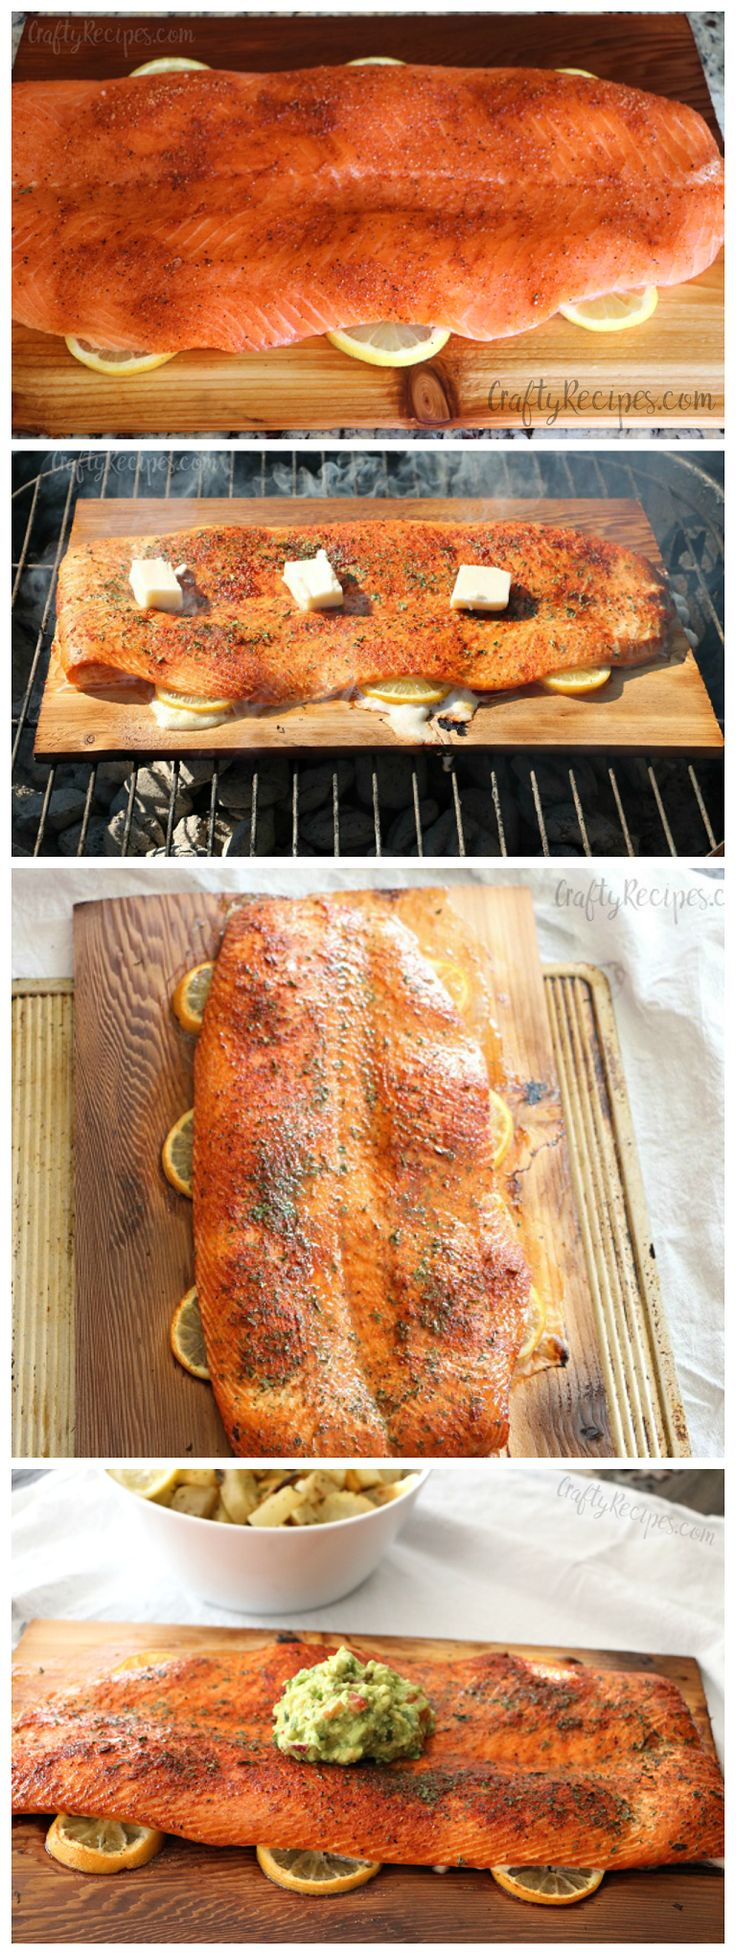 Cedar Plank Lemon Salmon Recipe - This is soo yummy on the grill for summer! Perfect dry rub too